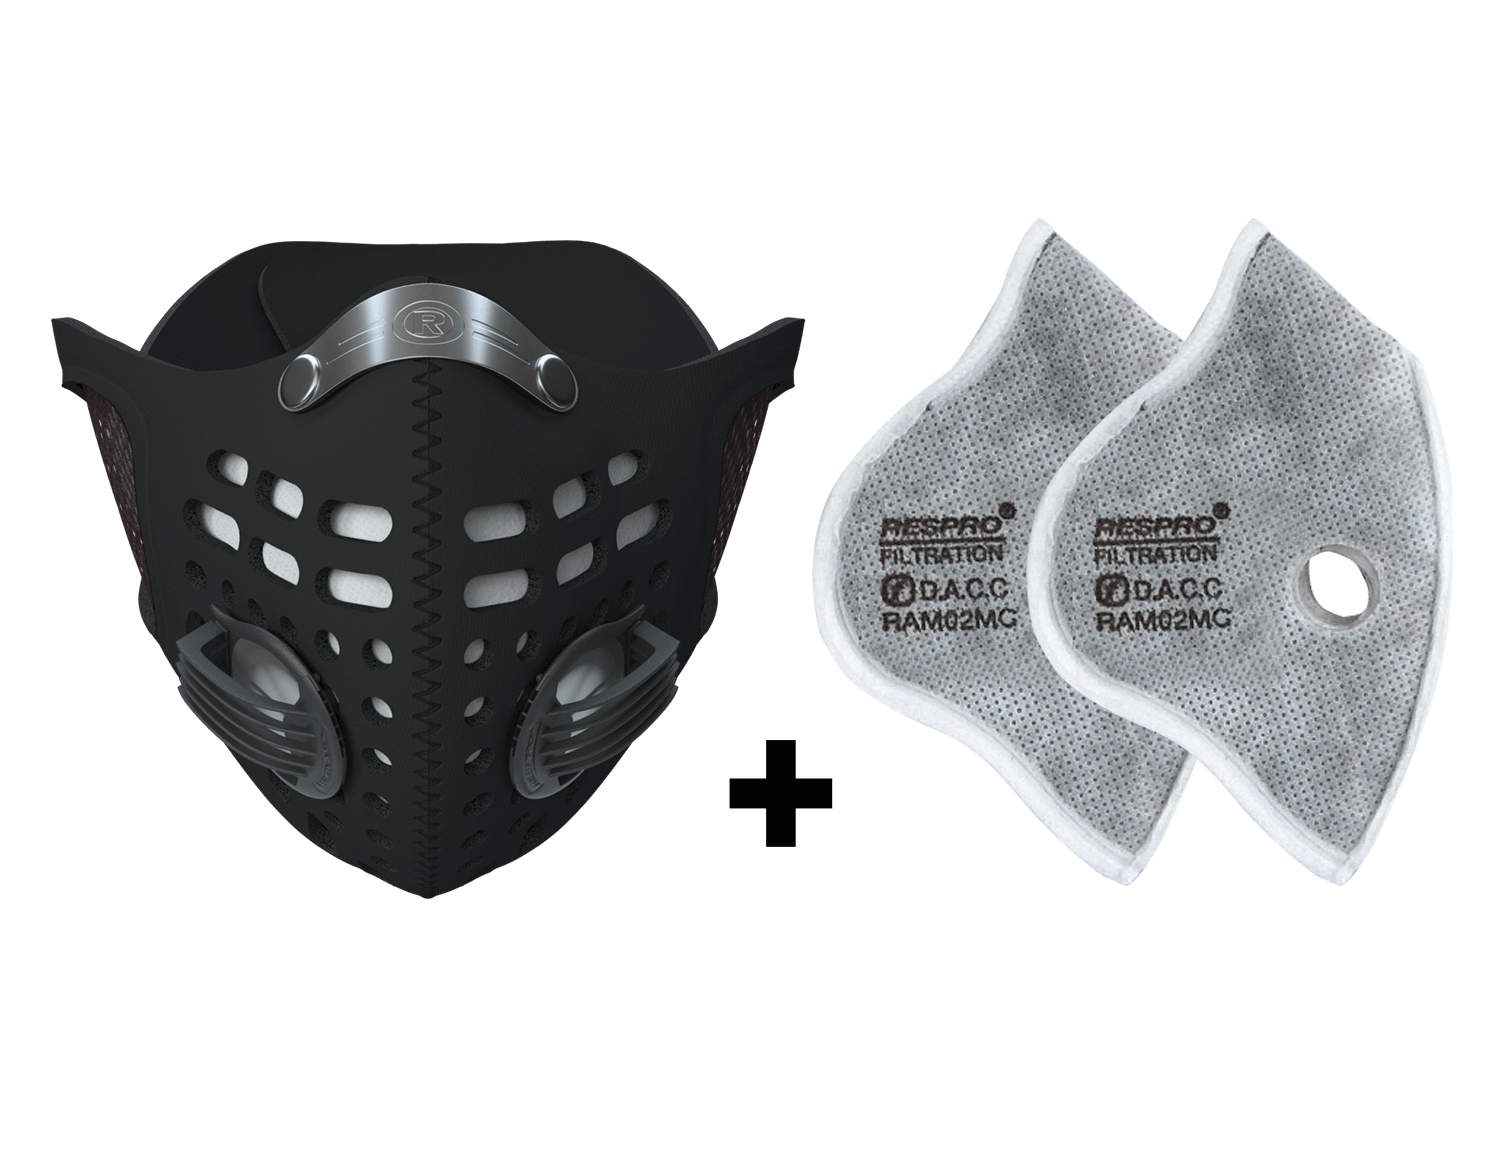 Combo Kit Sportsta™ Mask plus Filter - Black